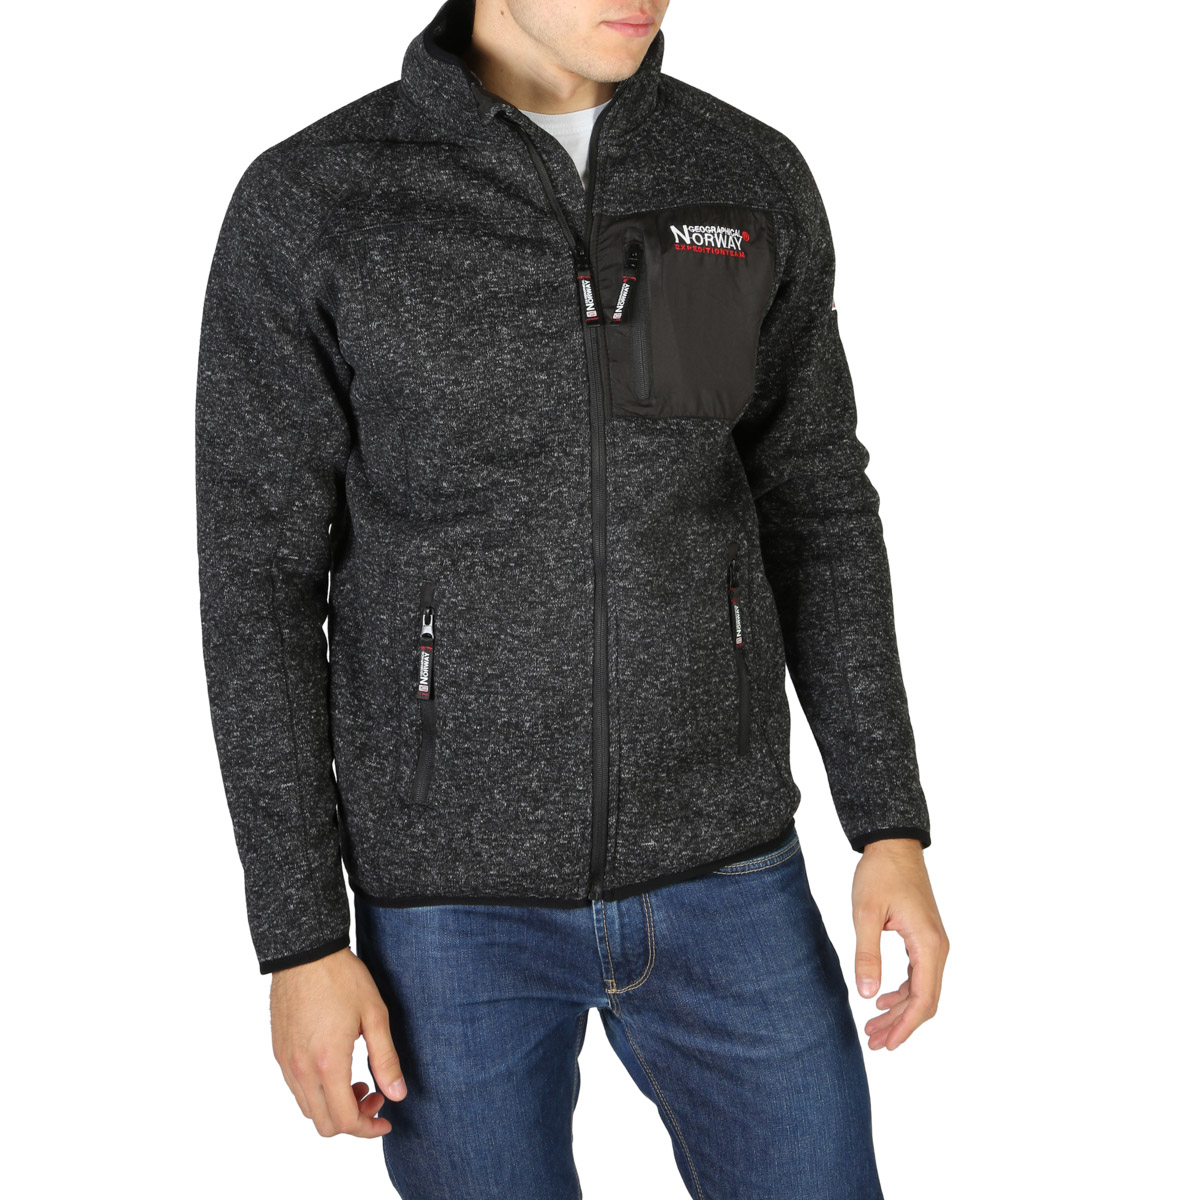 Geographical Norway Title man